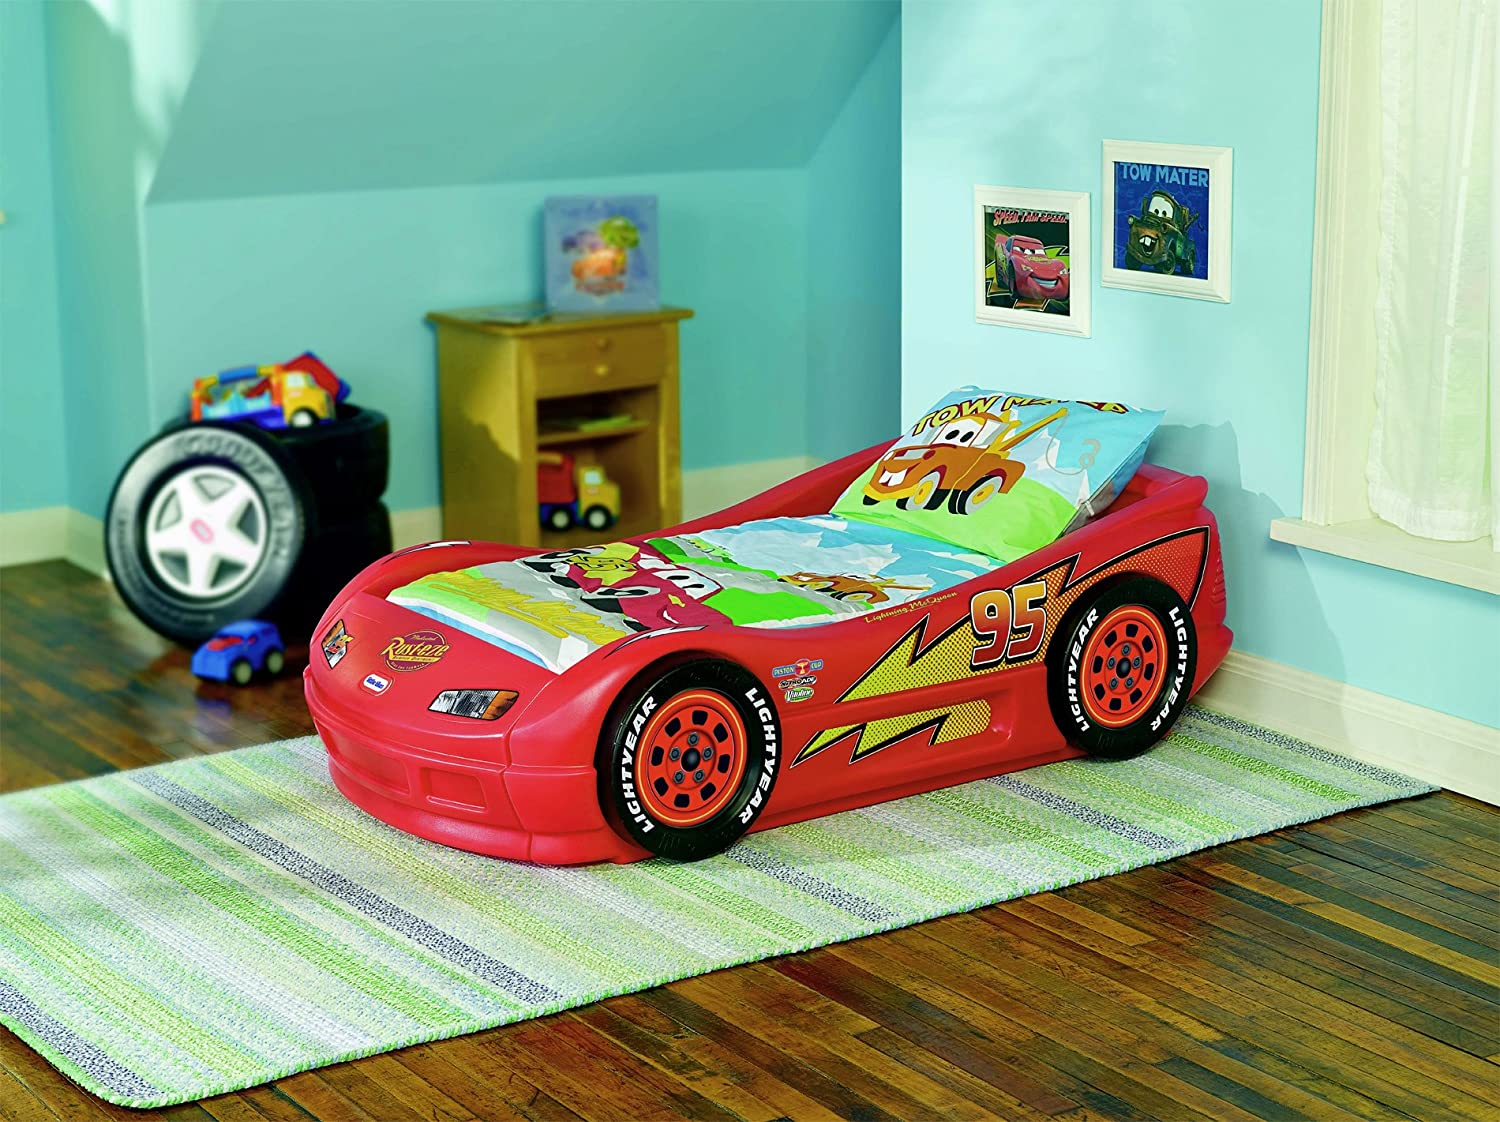 An Image of Little Tikes Lightning McQueen Roadster Toddler Bed